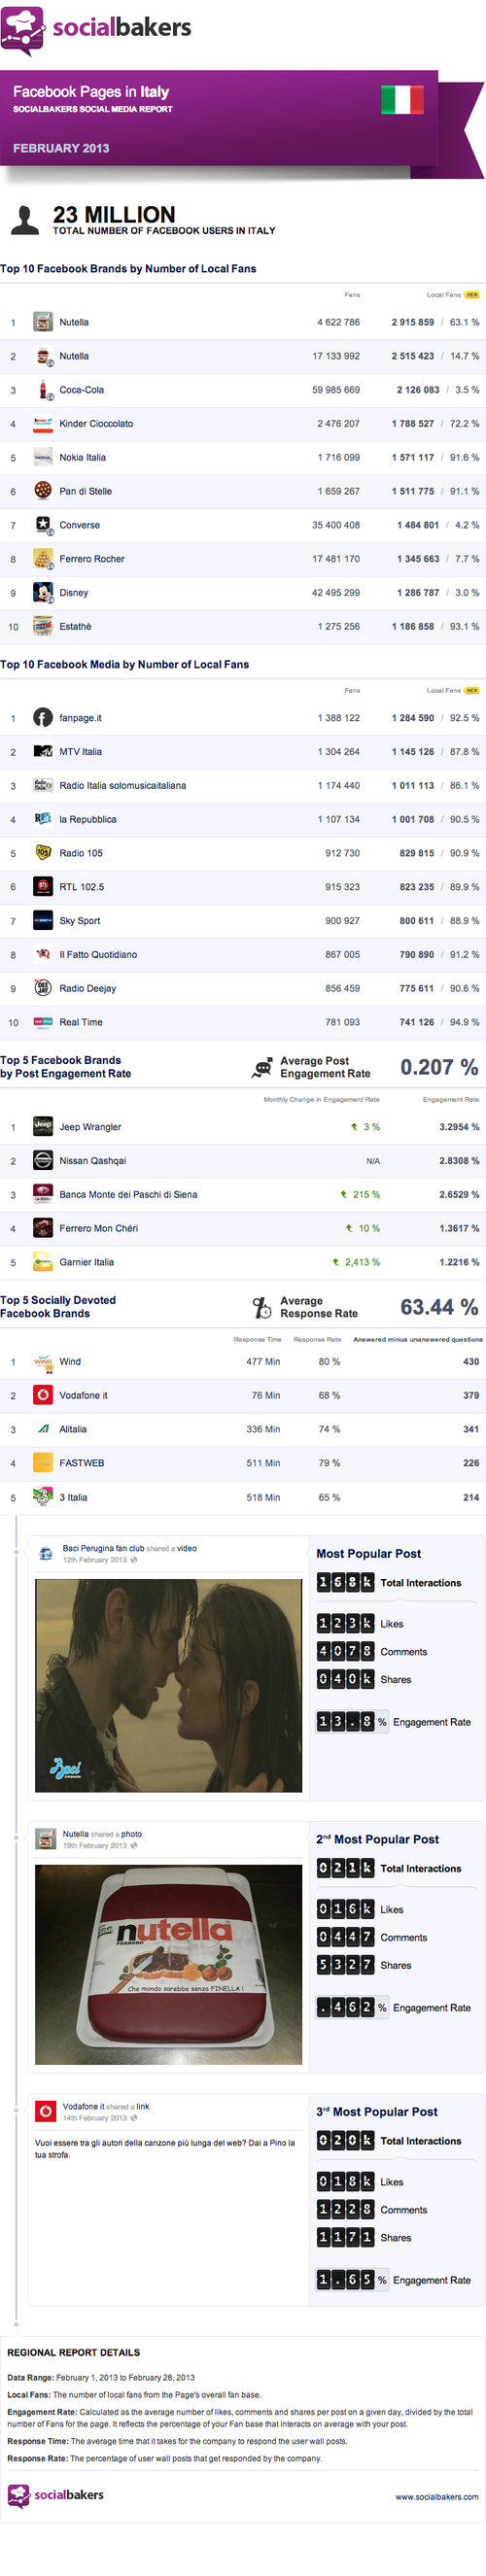 February 2013 Social Media Report: Facebook Pages in Italy